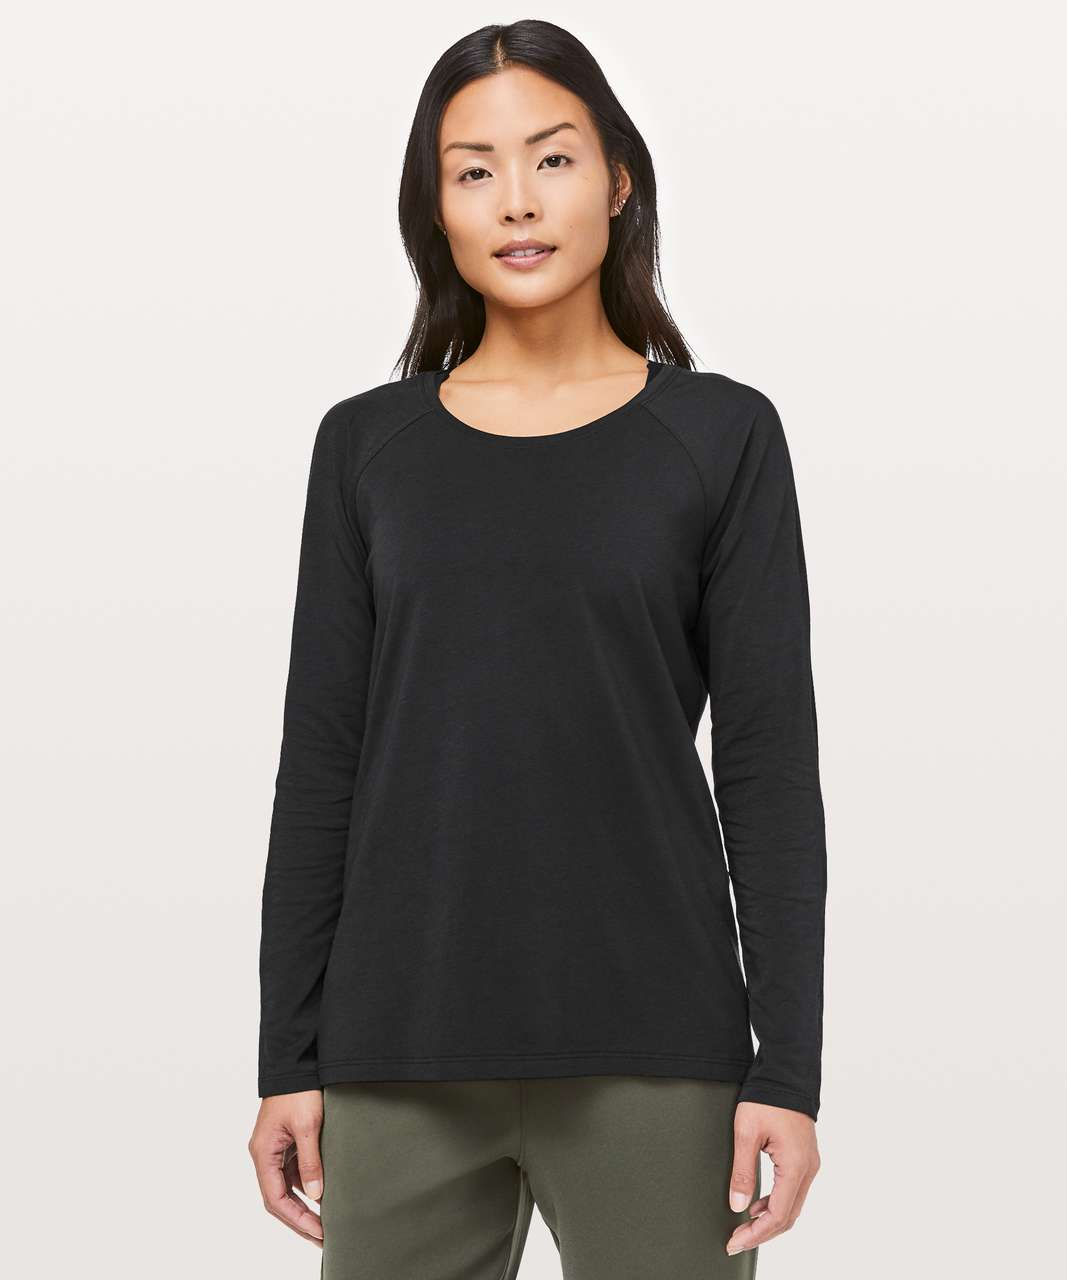 Lululemon Emerald Long Sleeve - Black (Third Release)